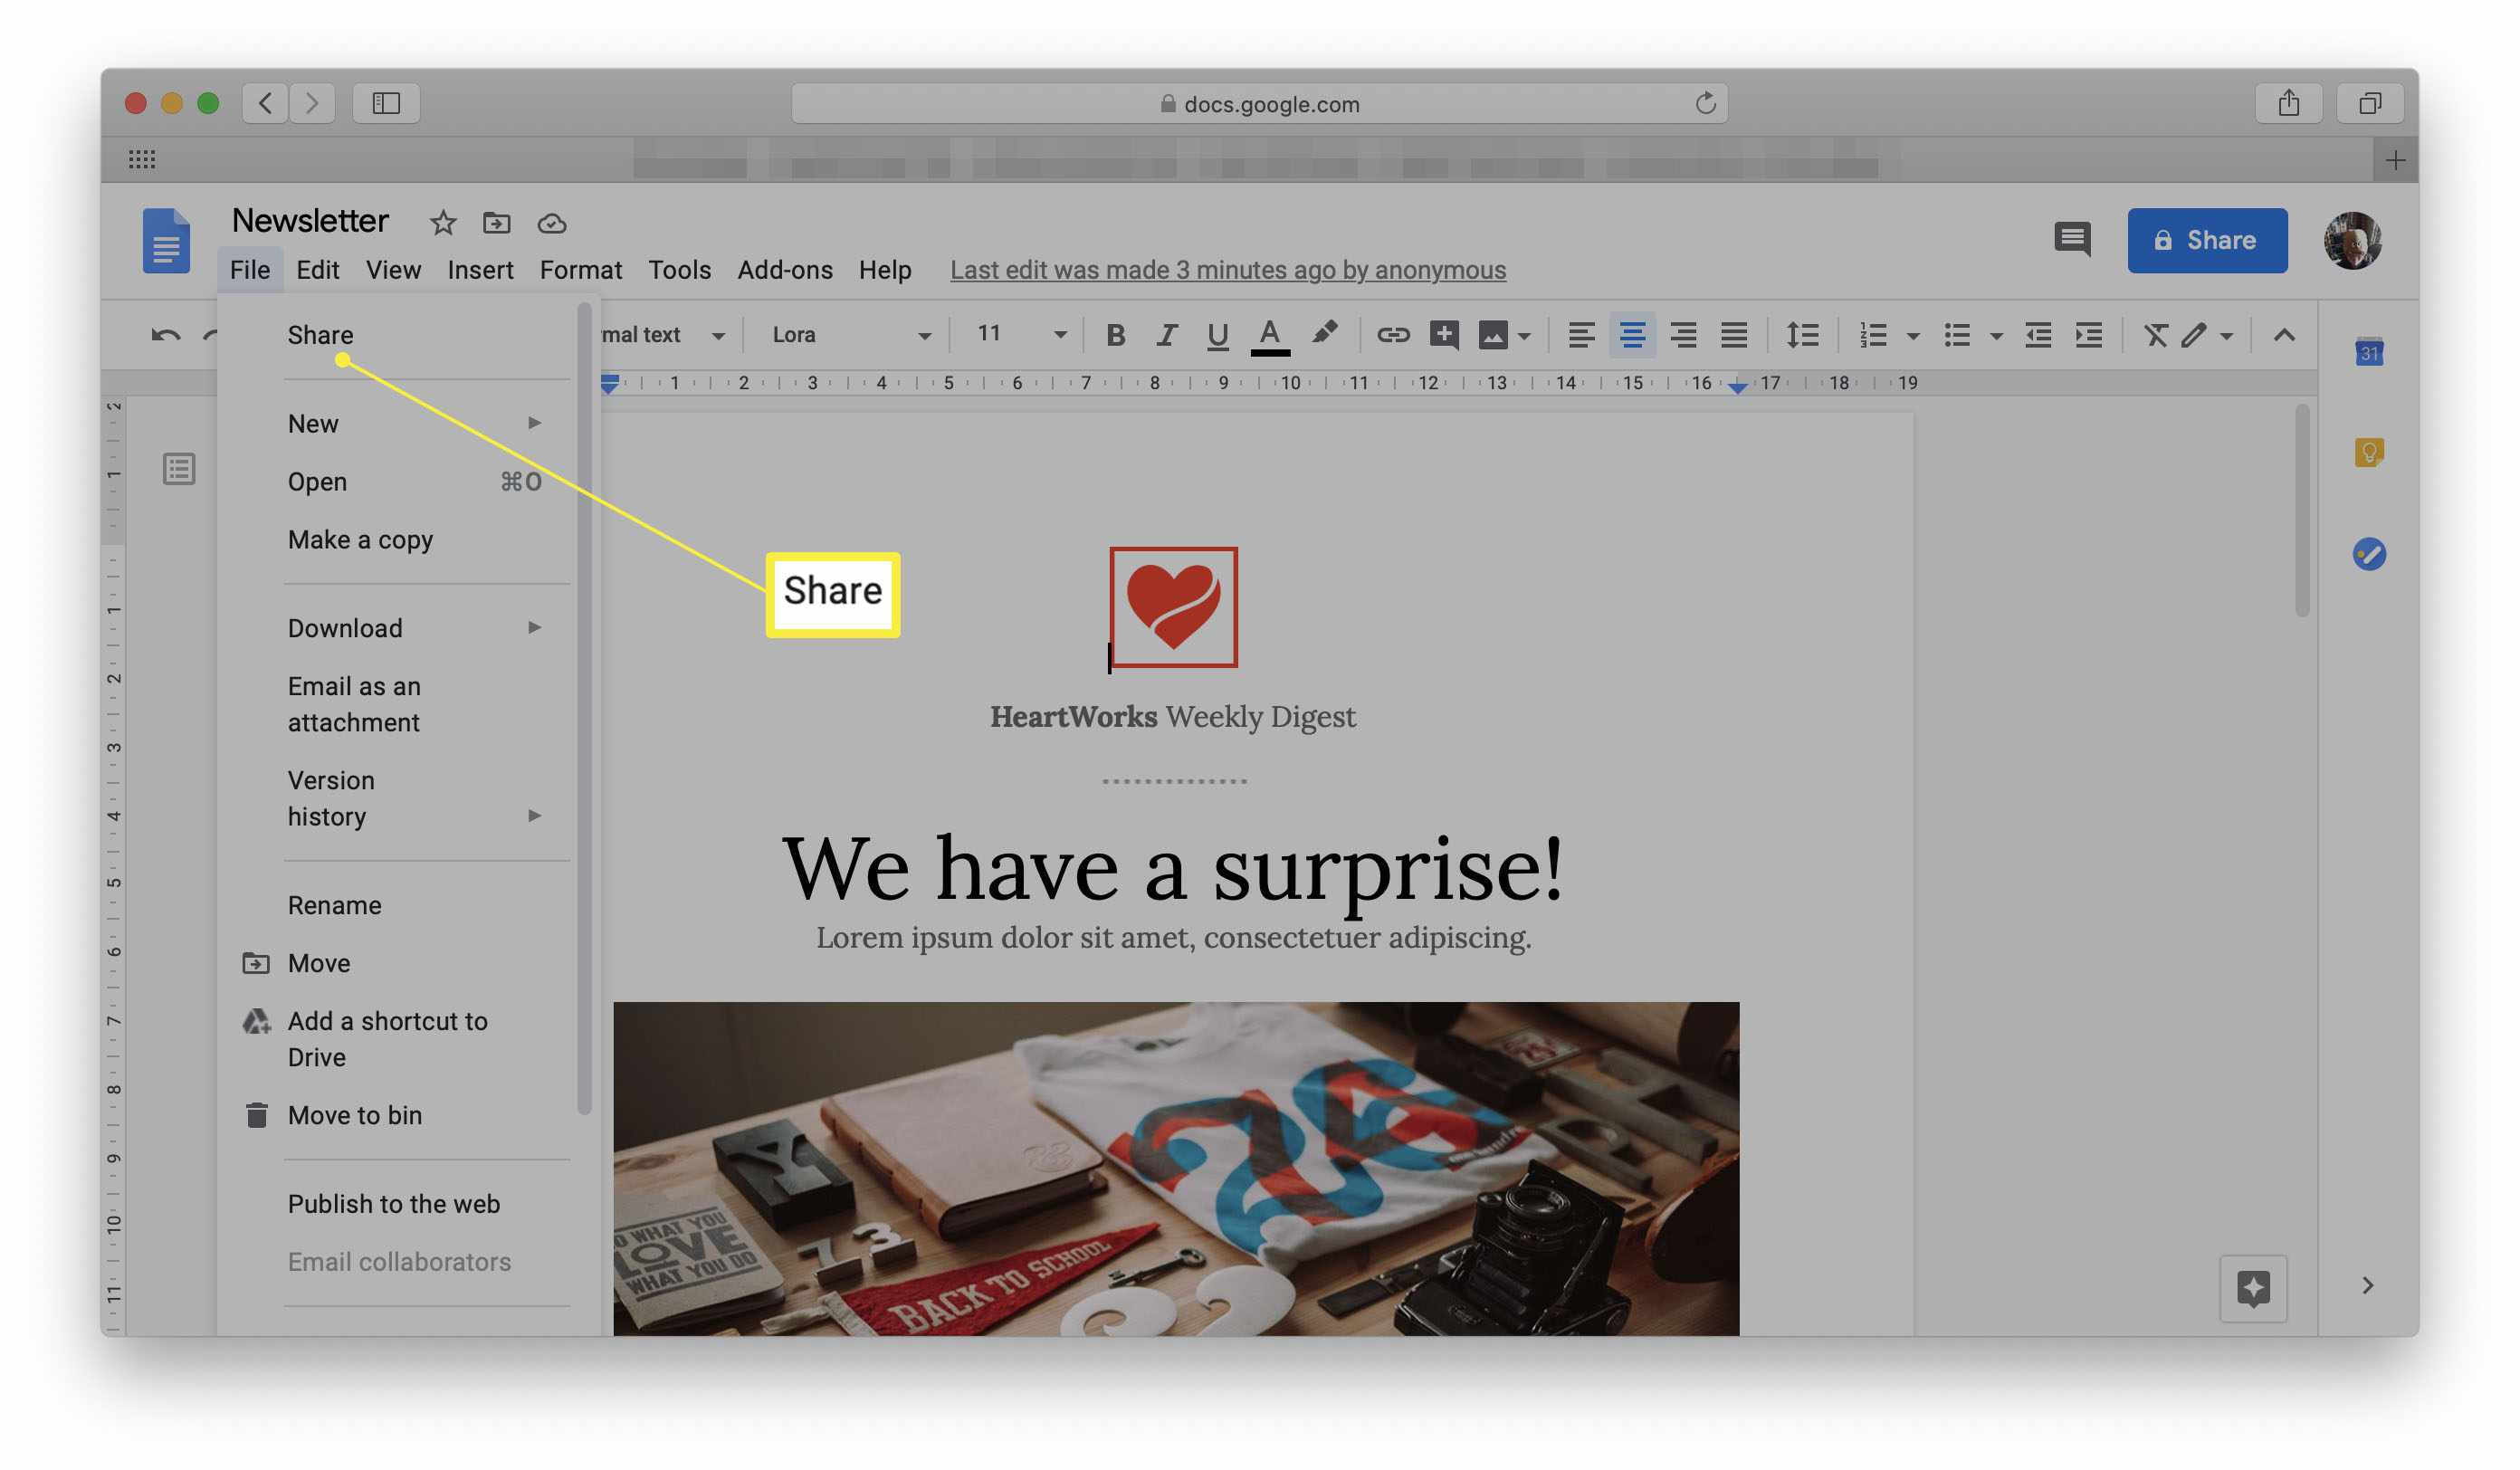 How to Use the Google Docs Flyer Template